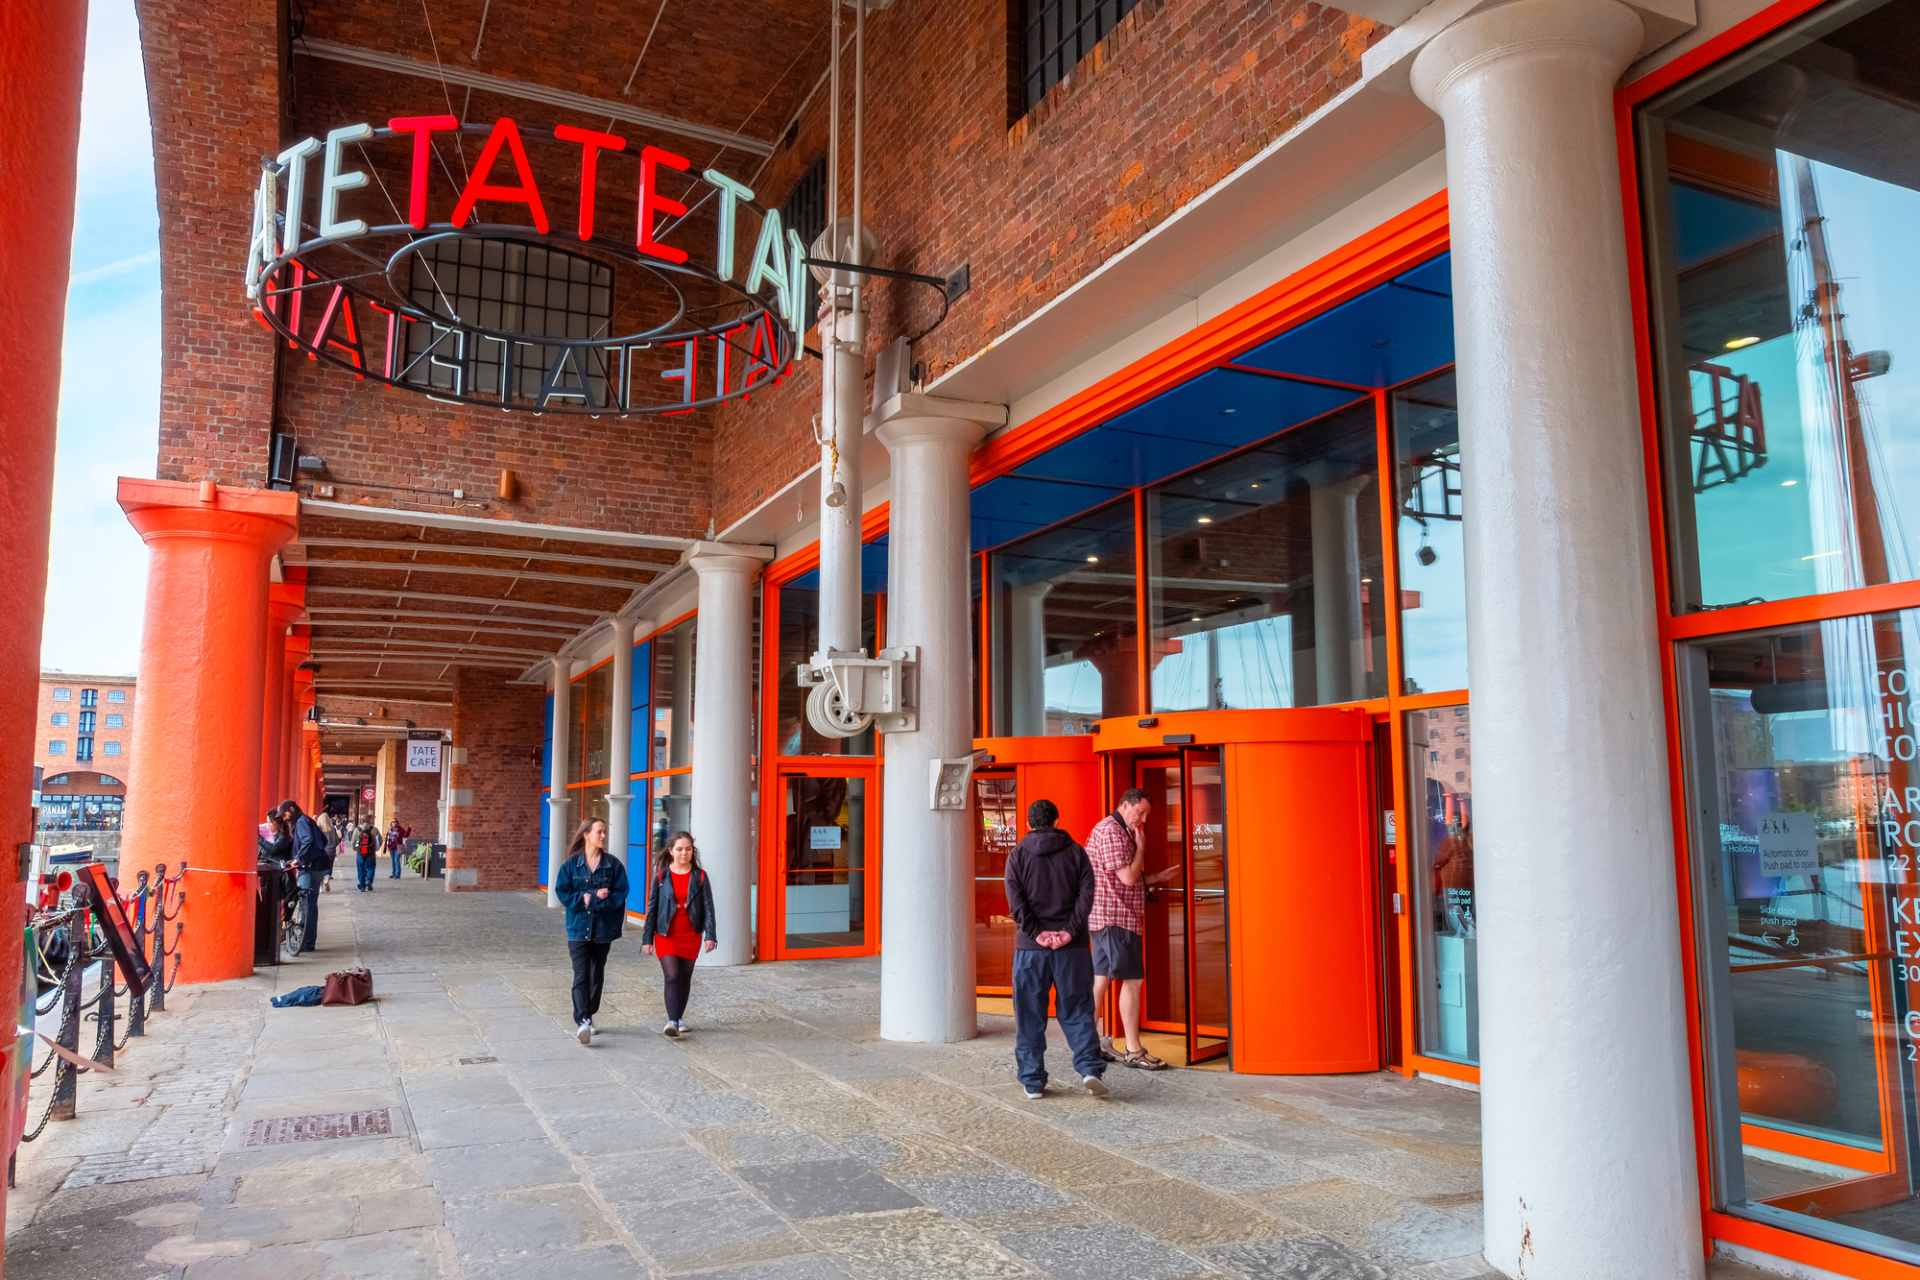 bright-red-and-blue-exterior-of-the-tate-gallery